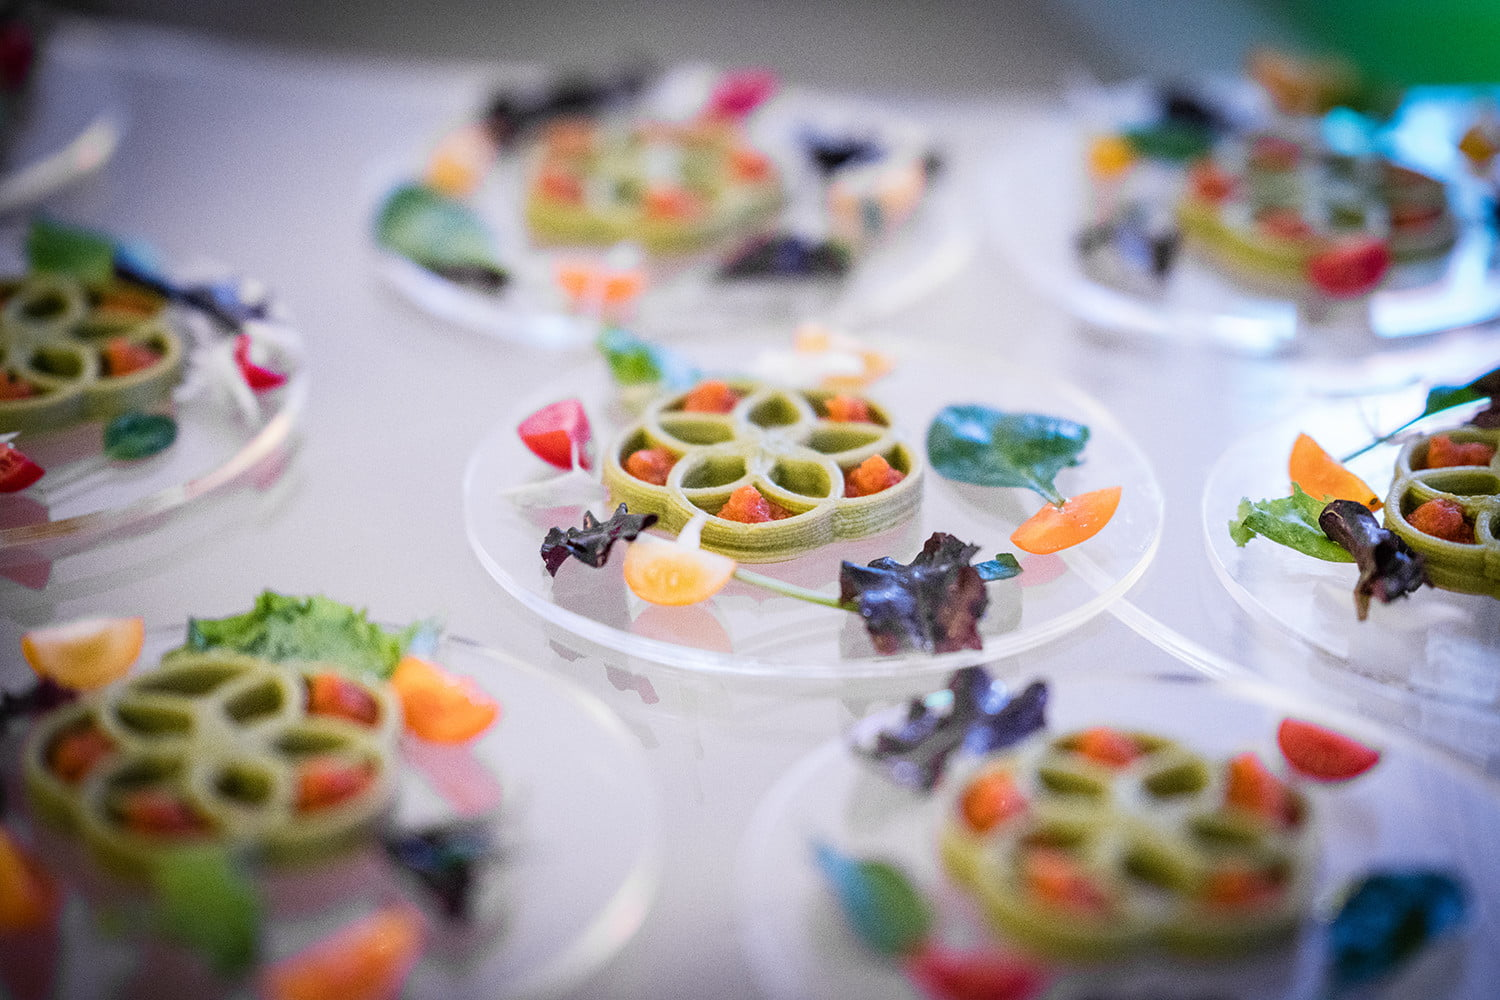 3D Food Printers How They Could Change What You Eat